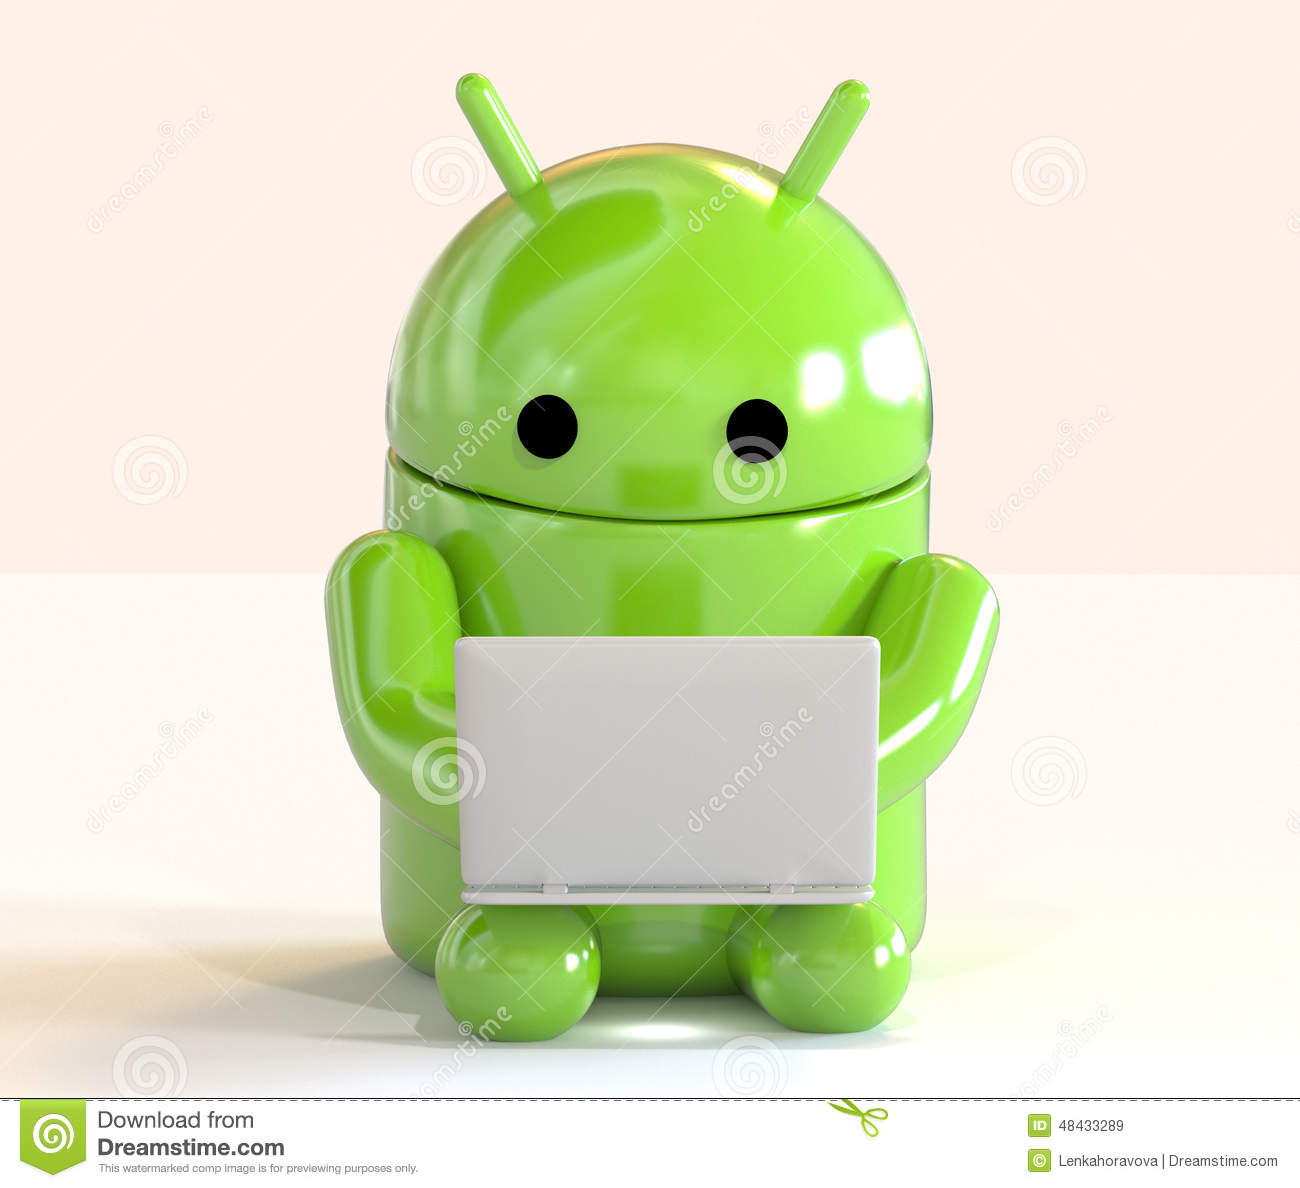 Google Android Os Logo Mascot Working On A Laptop On White